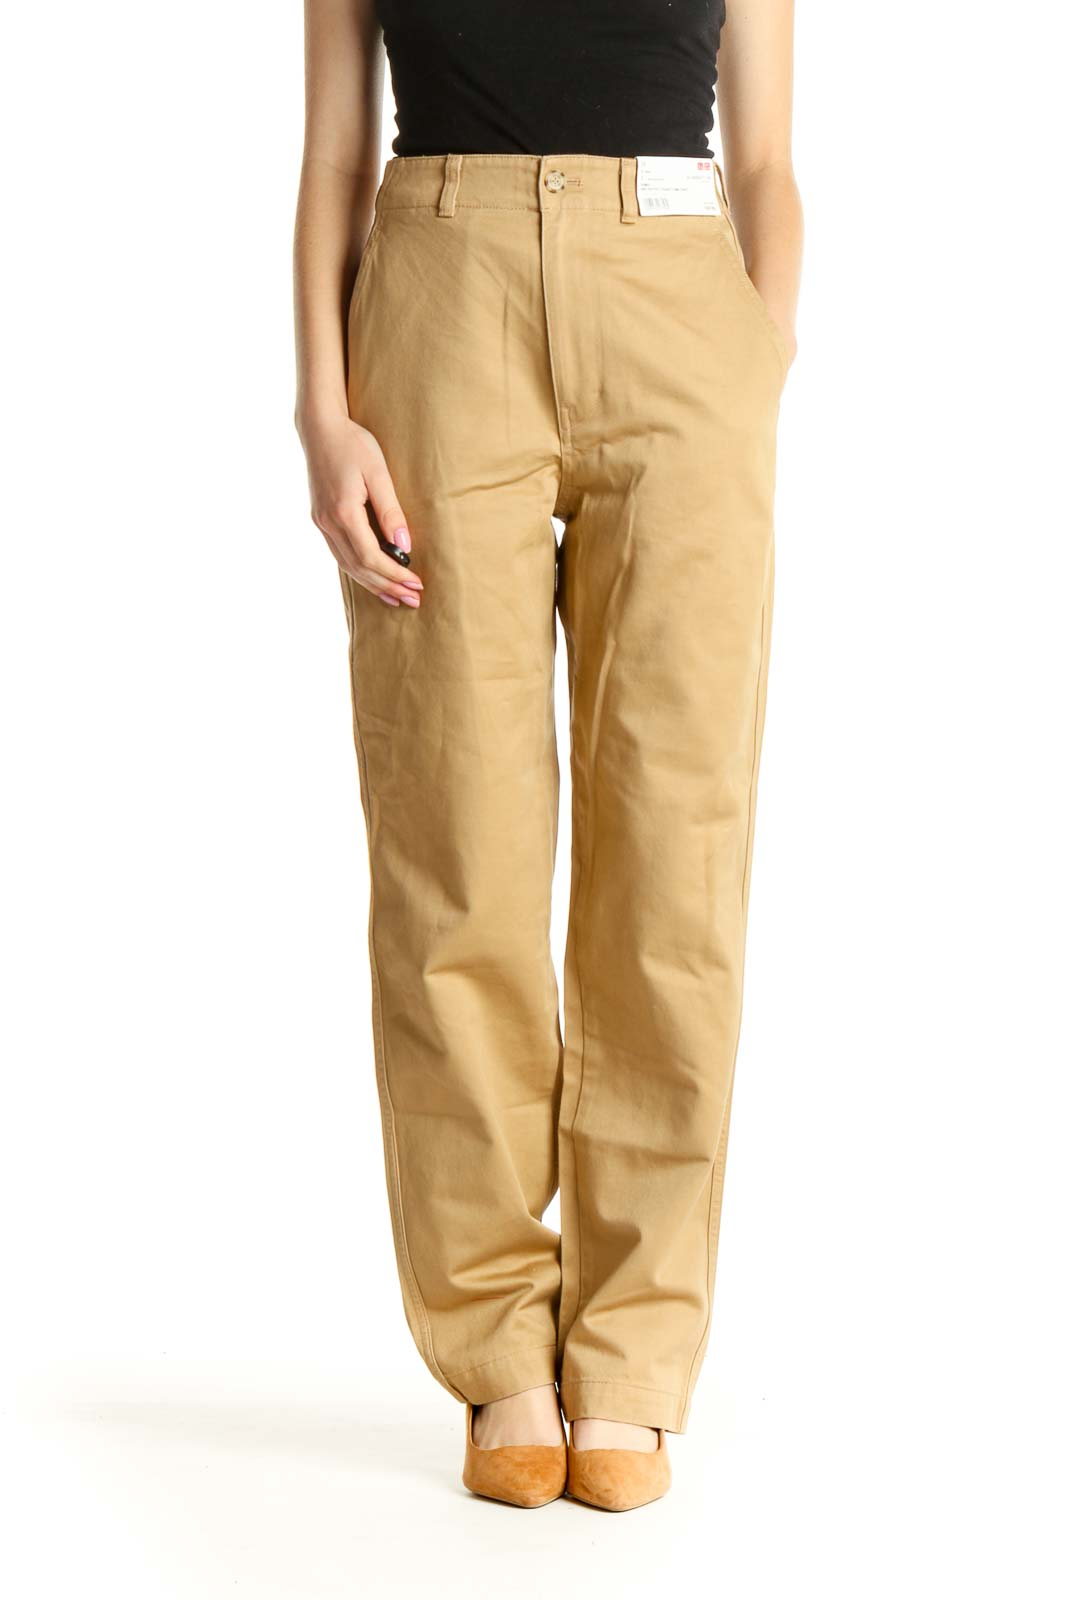 Beige All Day Wear High Waisted Trousers Front